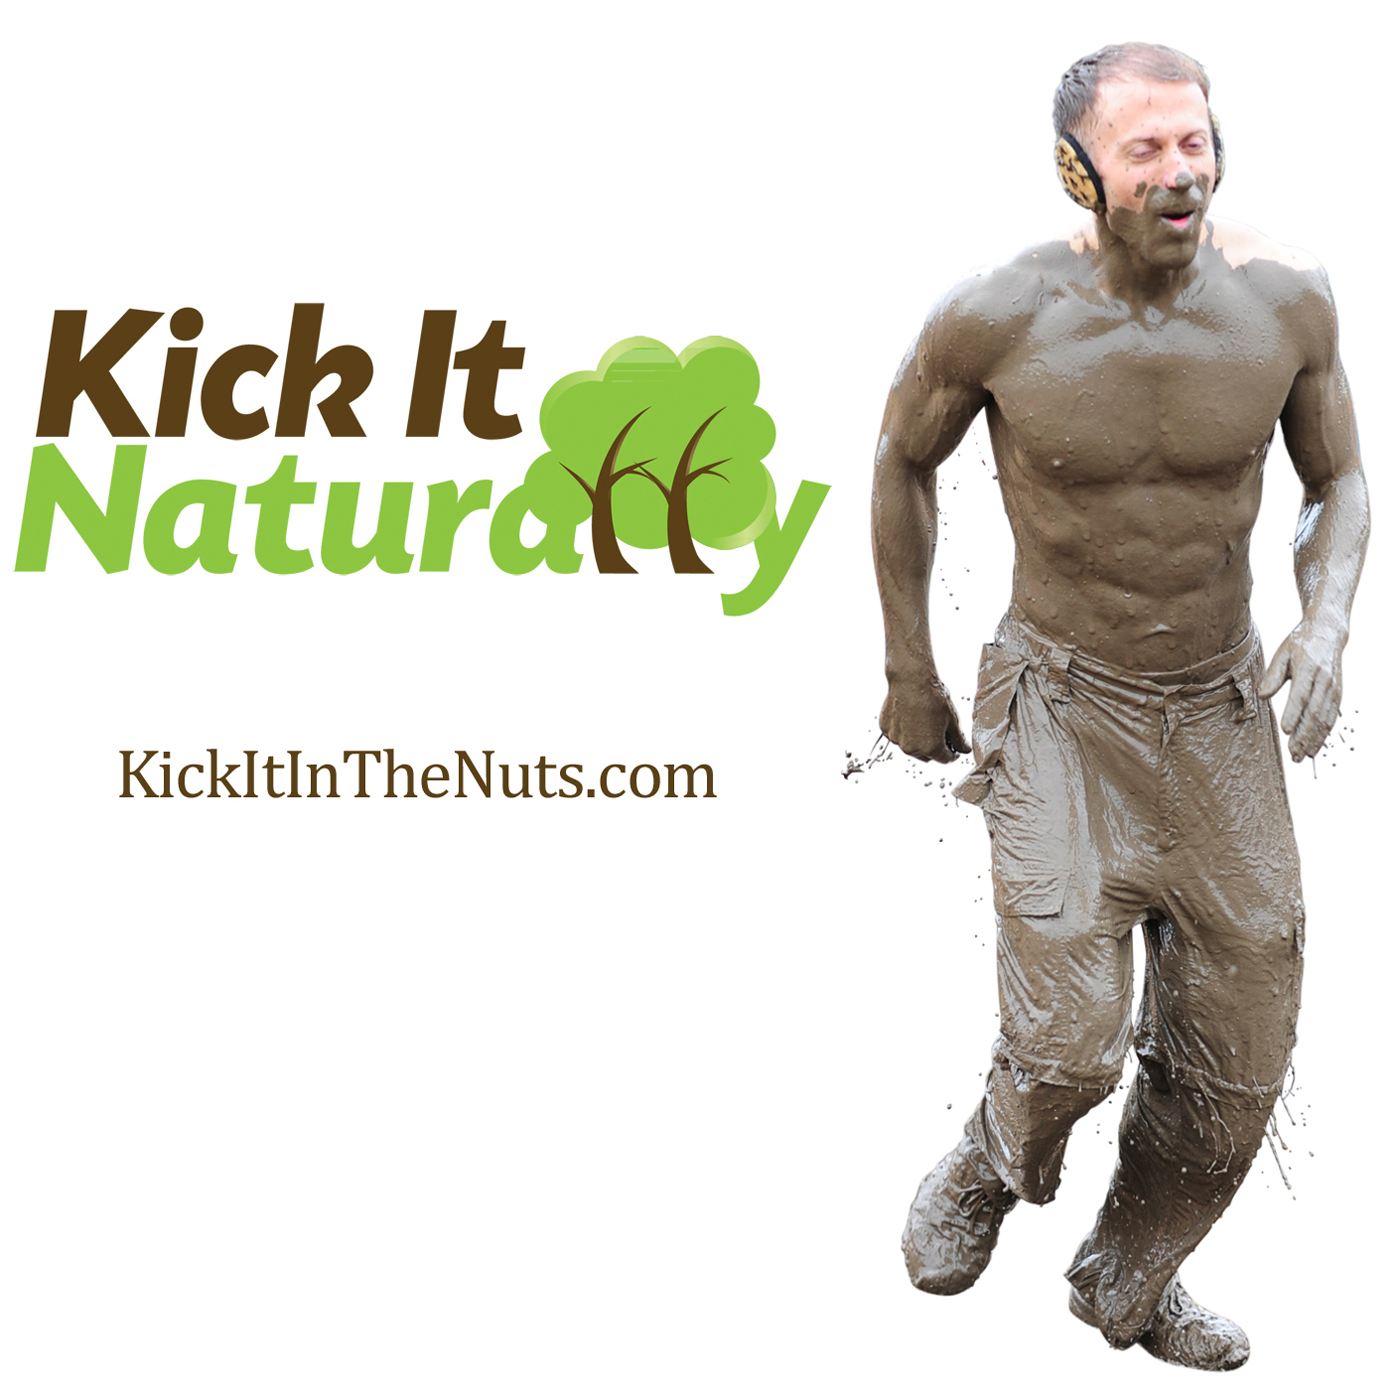 Kick It Naturally